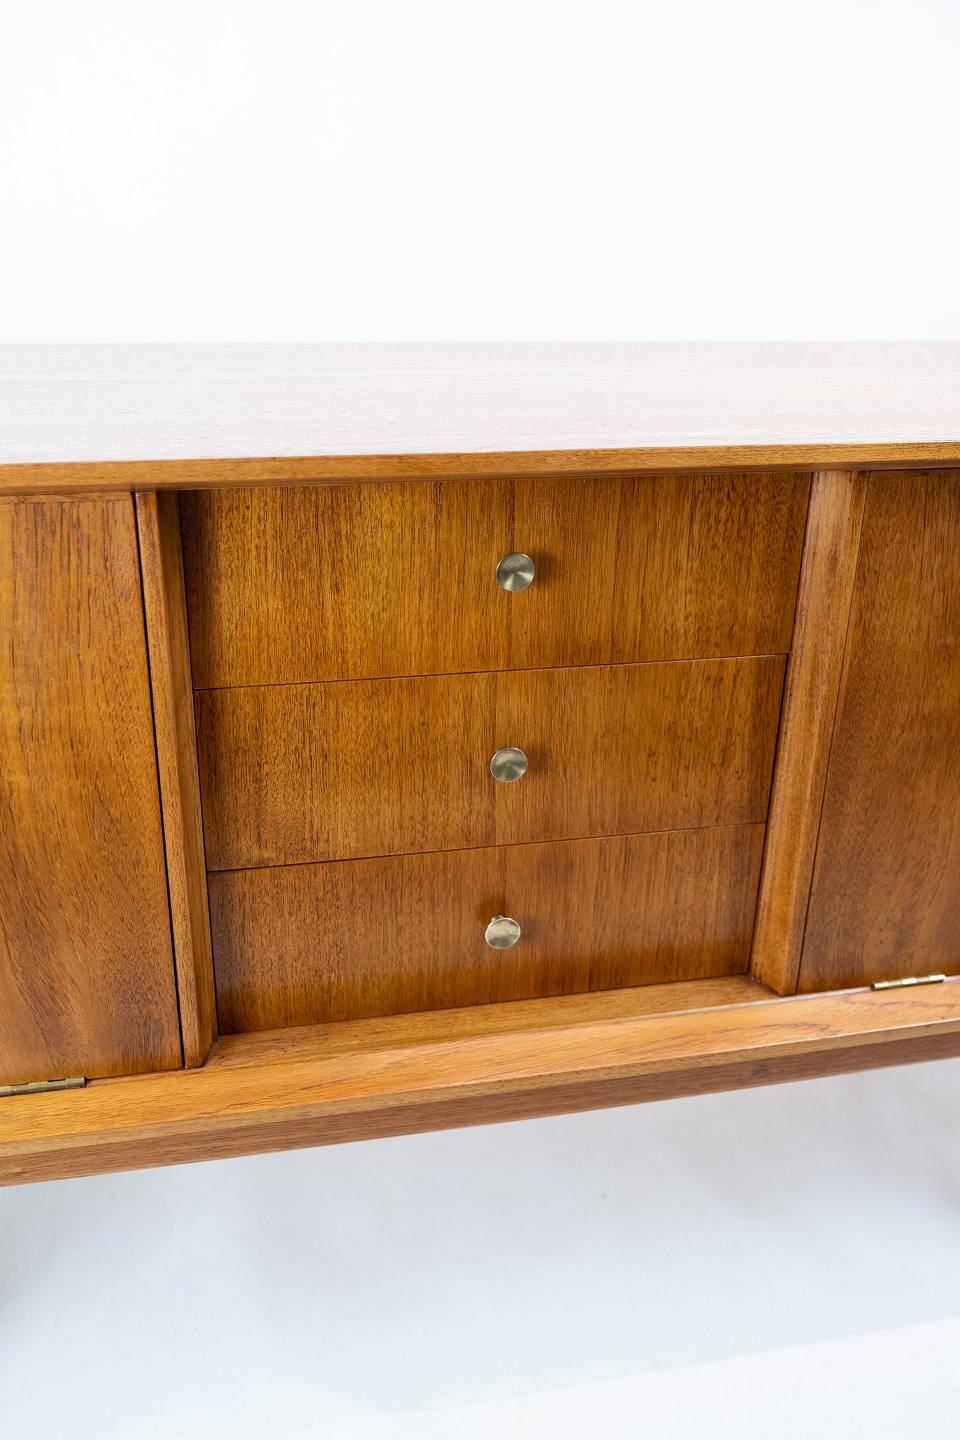 Sideboard Antik Osted Antik & Design * Sideboard In Teak Of Danish Design From The 1960s. * 5000m2 Showroom.